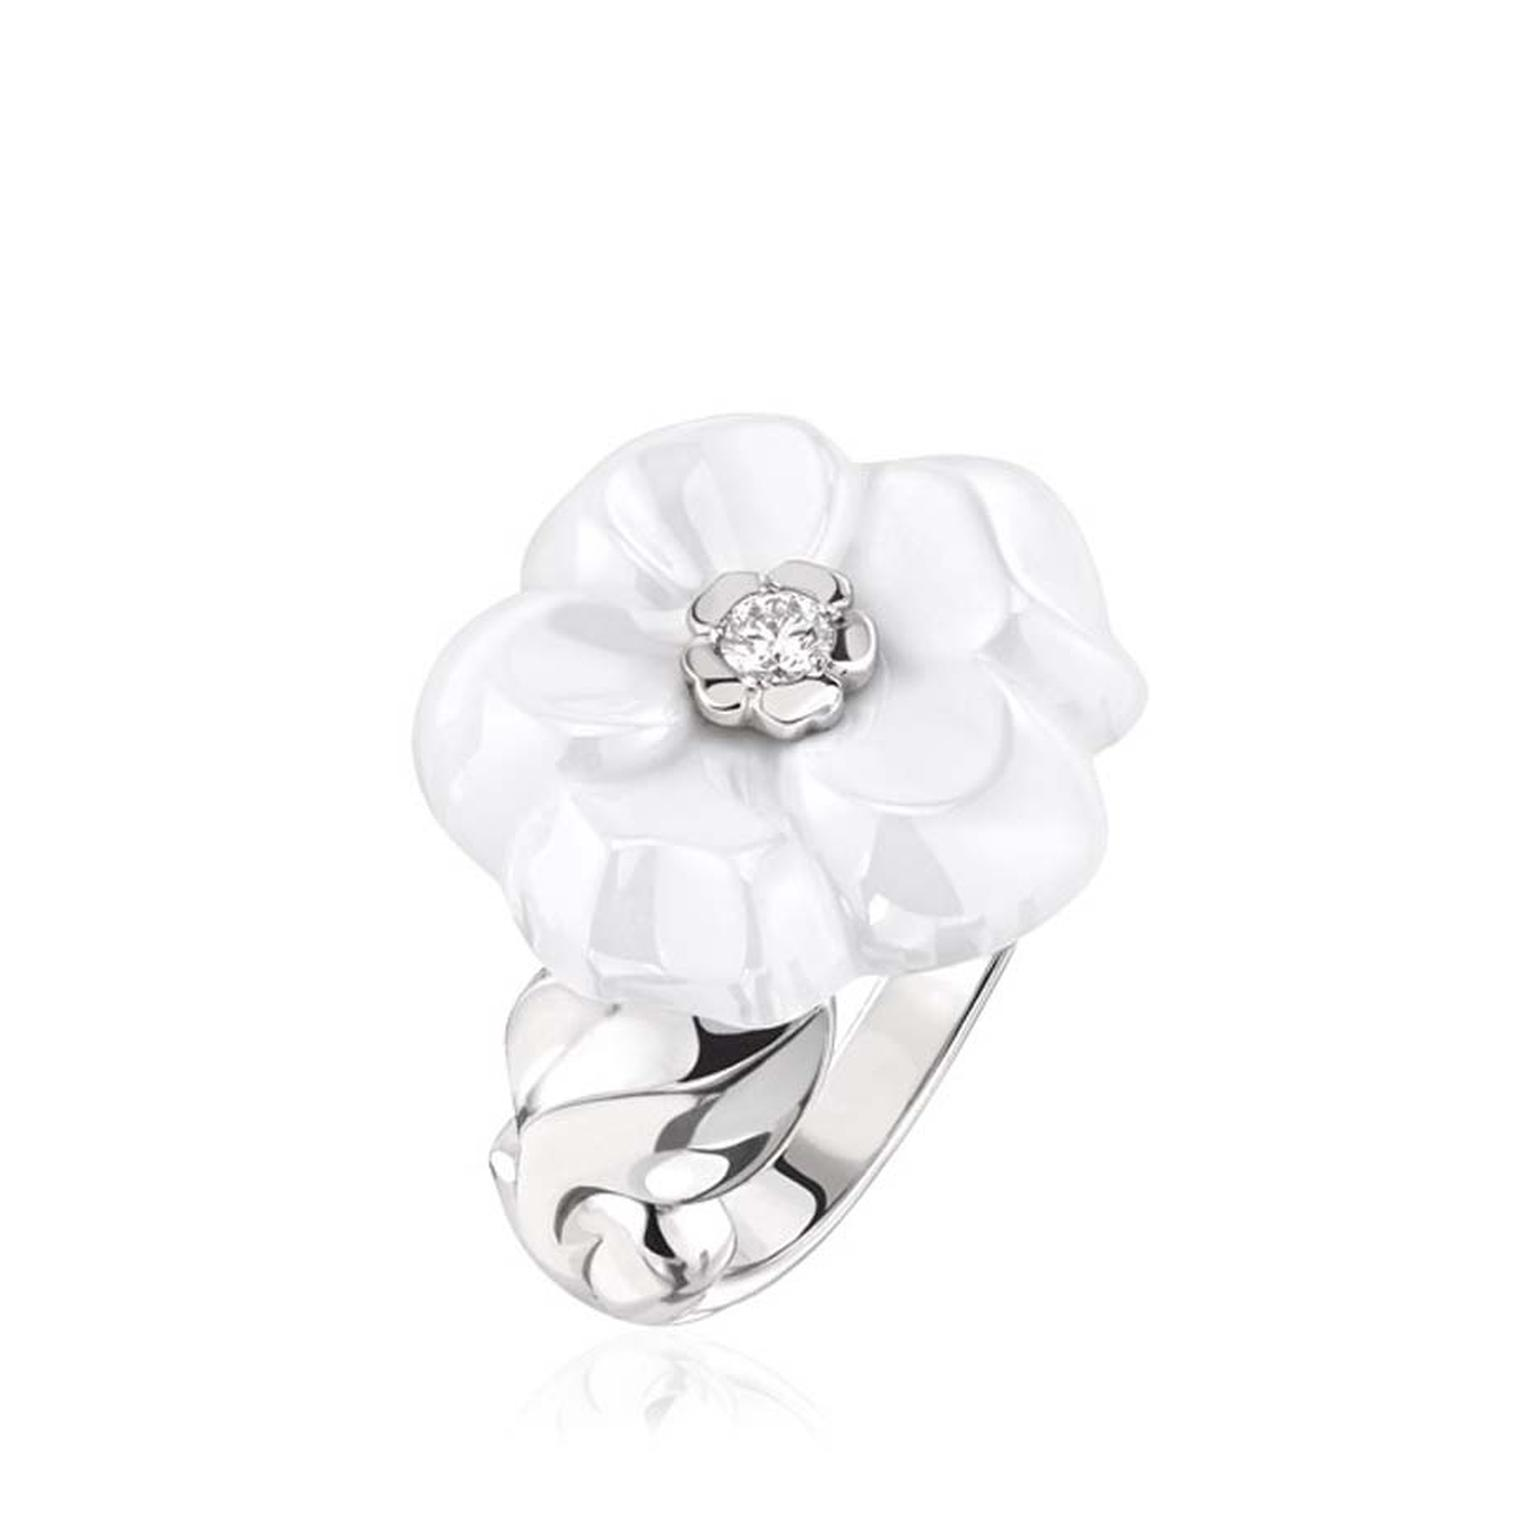 Chanel Camélia Galbé white ceramic ring, with a gleaming brilliant-cut diamond at its heart.